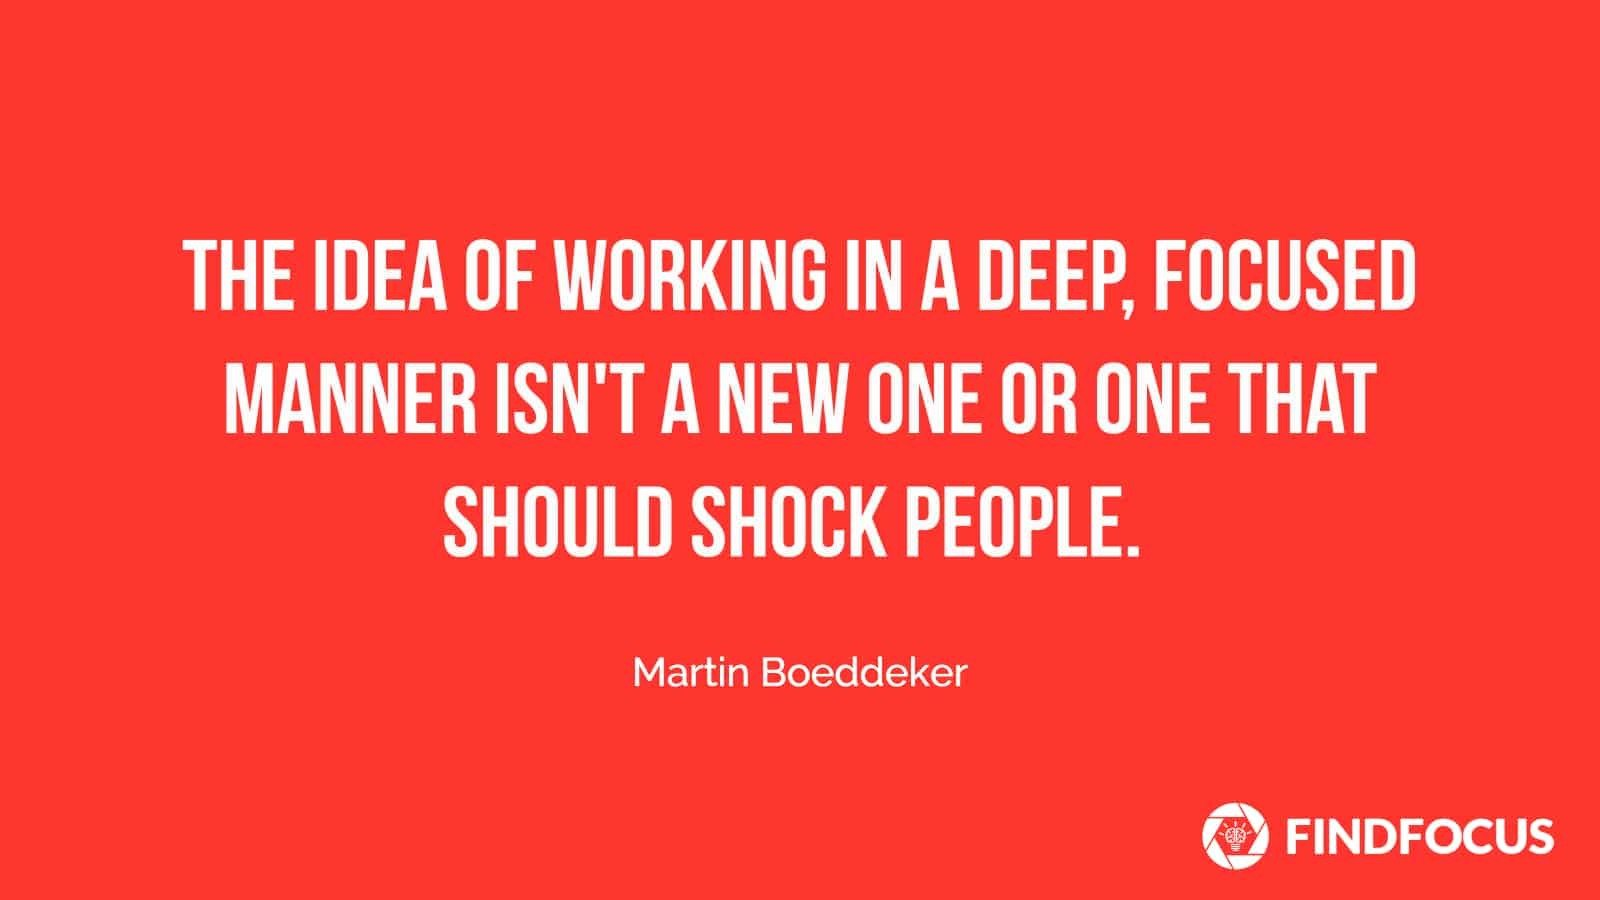 The Deep Work Book Should Not Shock People